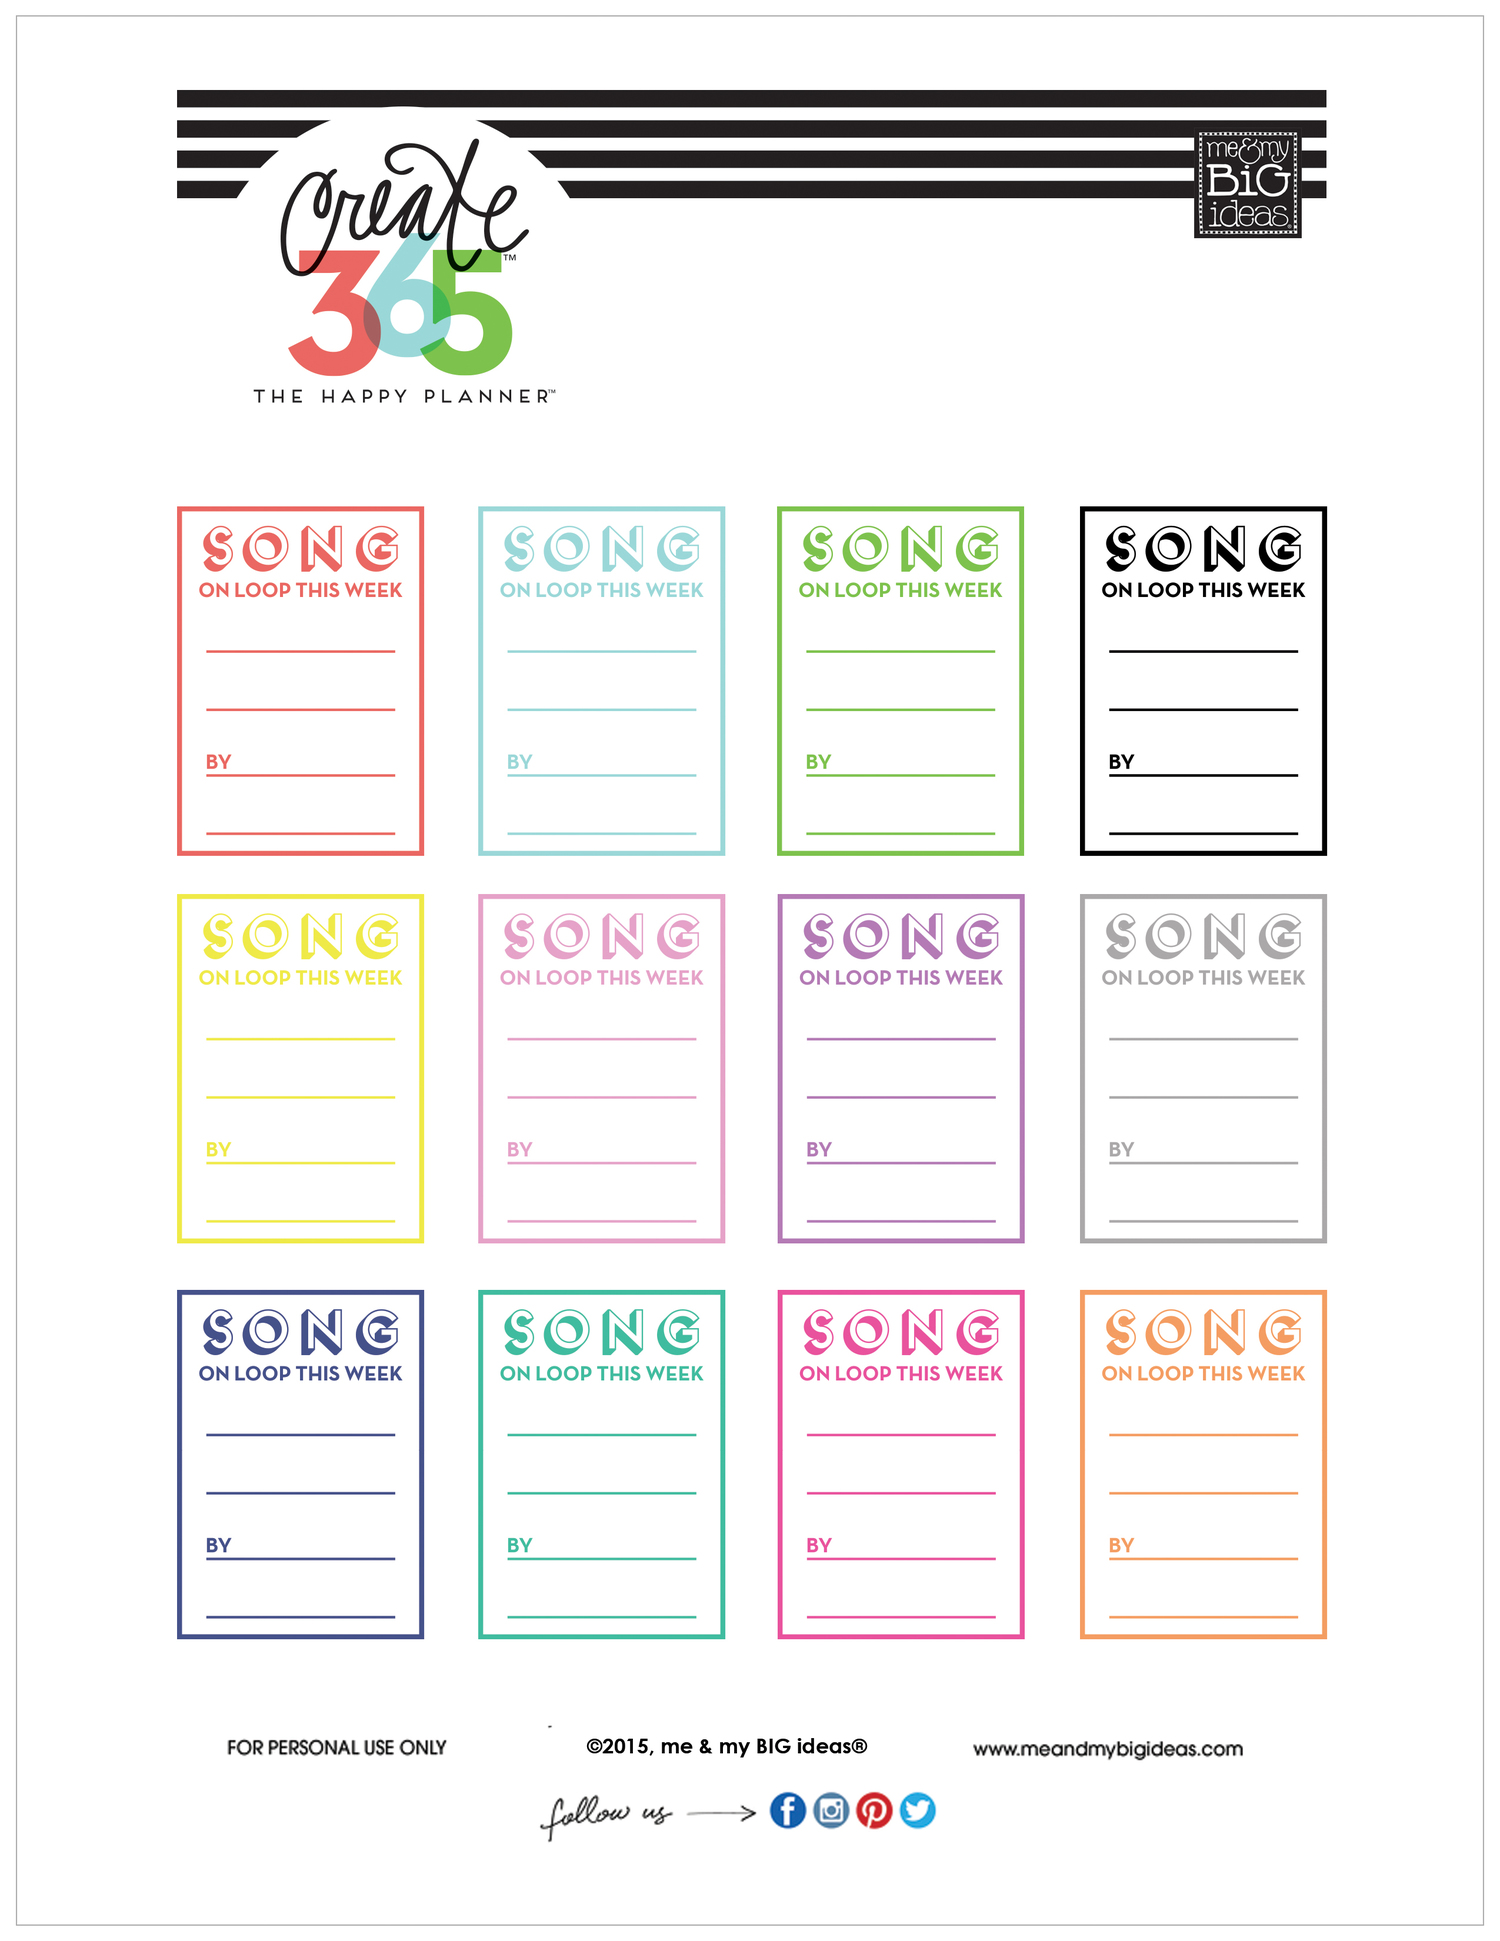 96cd5cde0be3b SONG ON LOOP' free printable for The Happy Planner™ — me & my BIG ideas